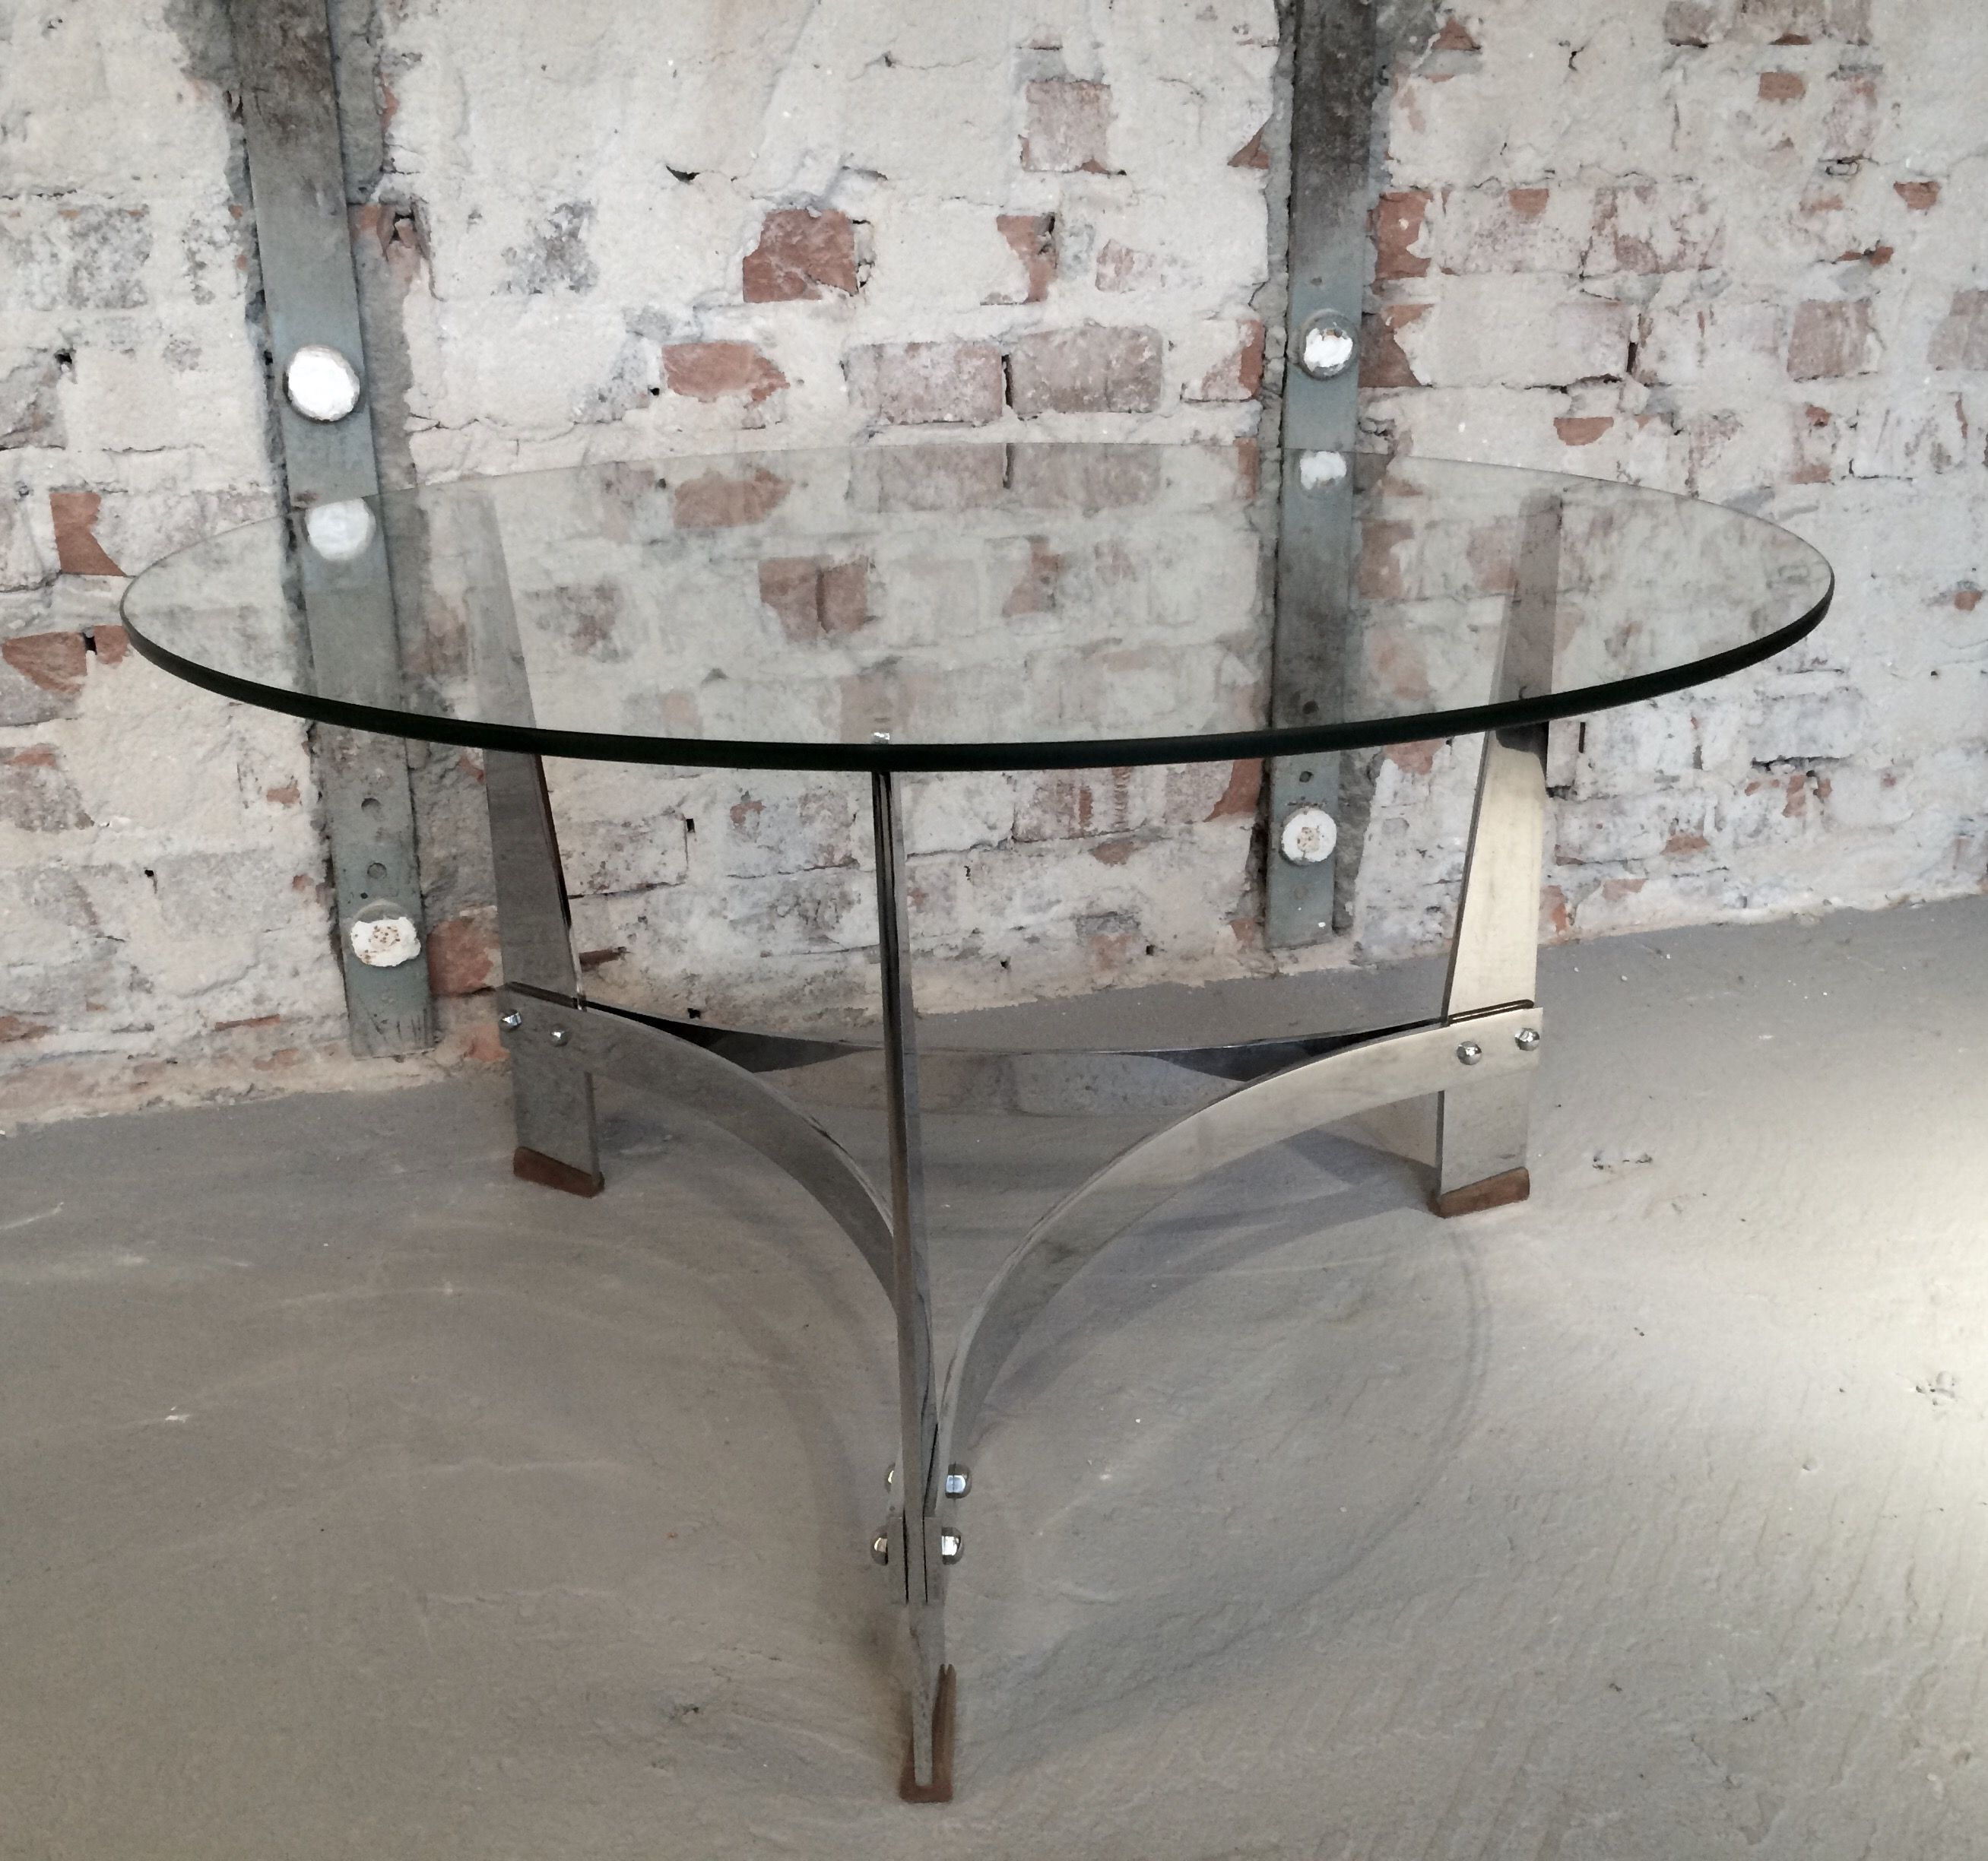 Italian furniture manufacturer Round glass table on metal legs